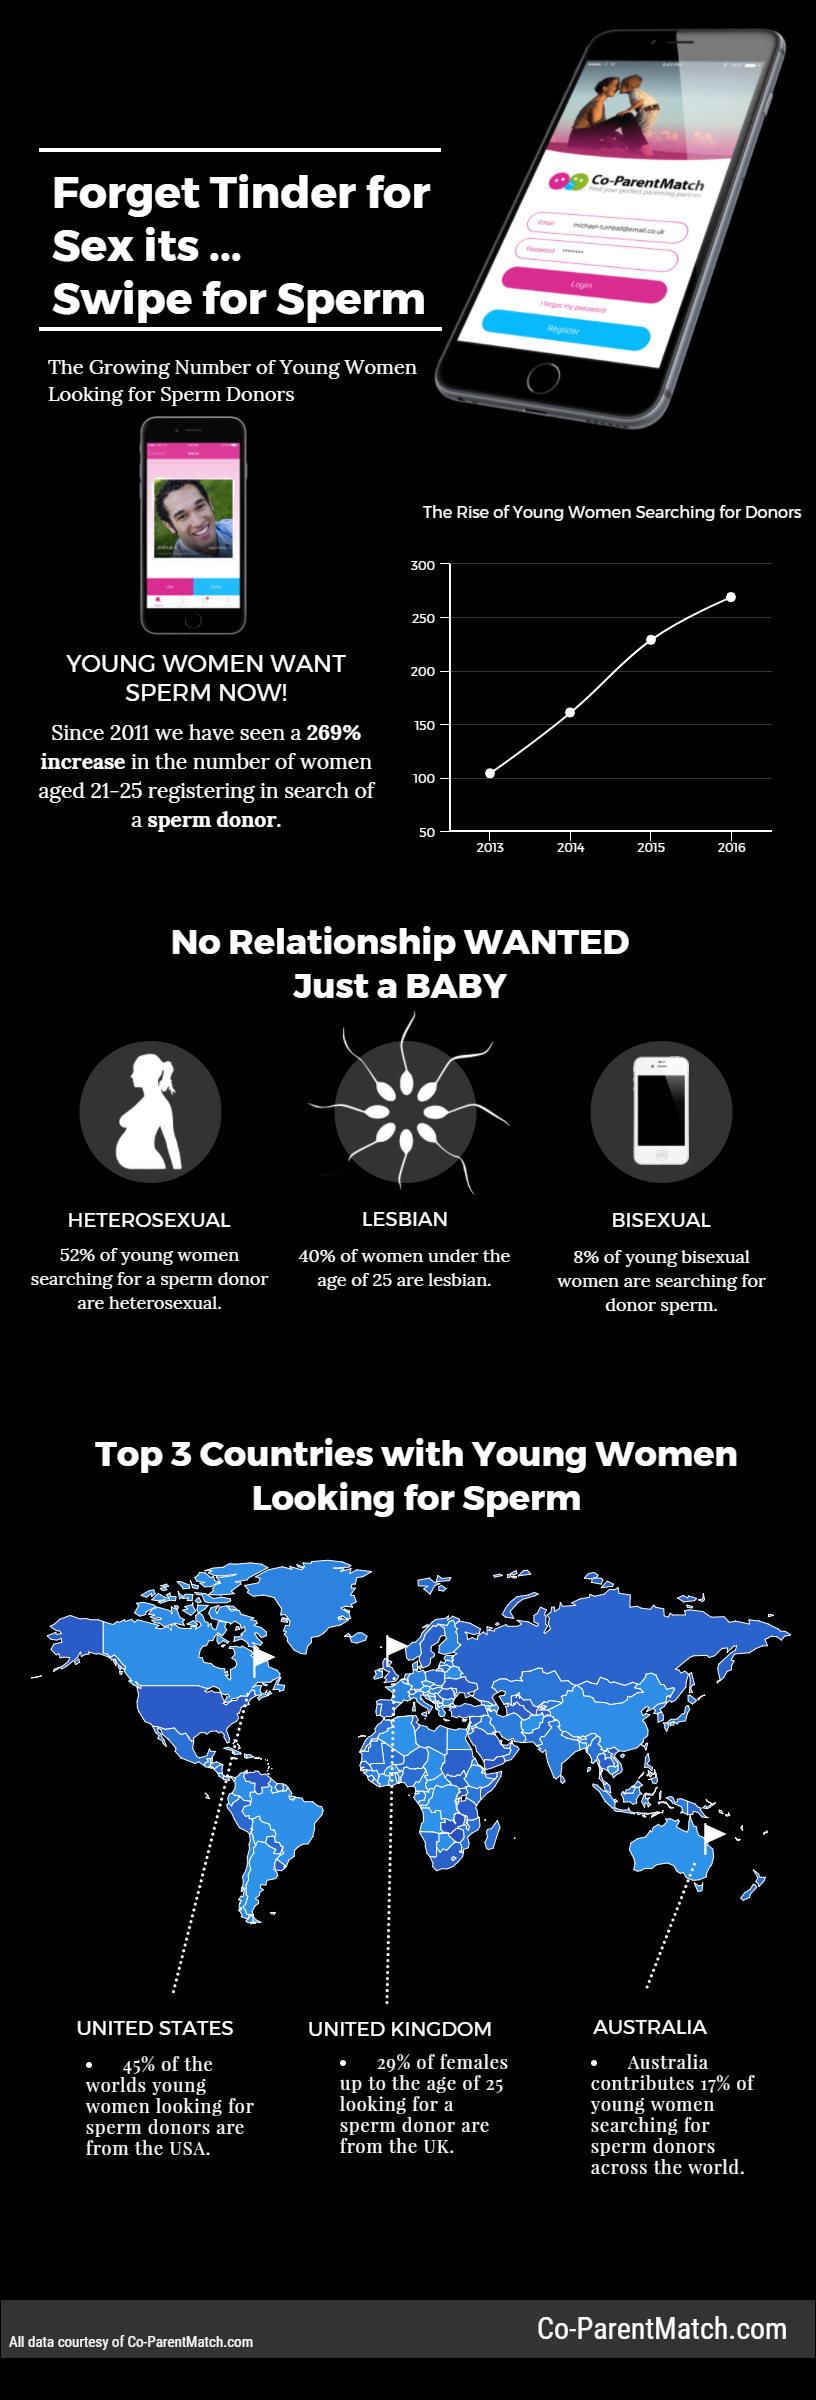 Swipe for Sperm Infographic